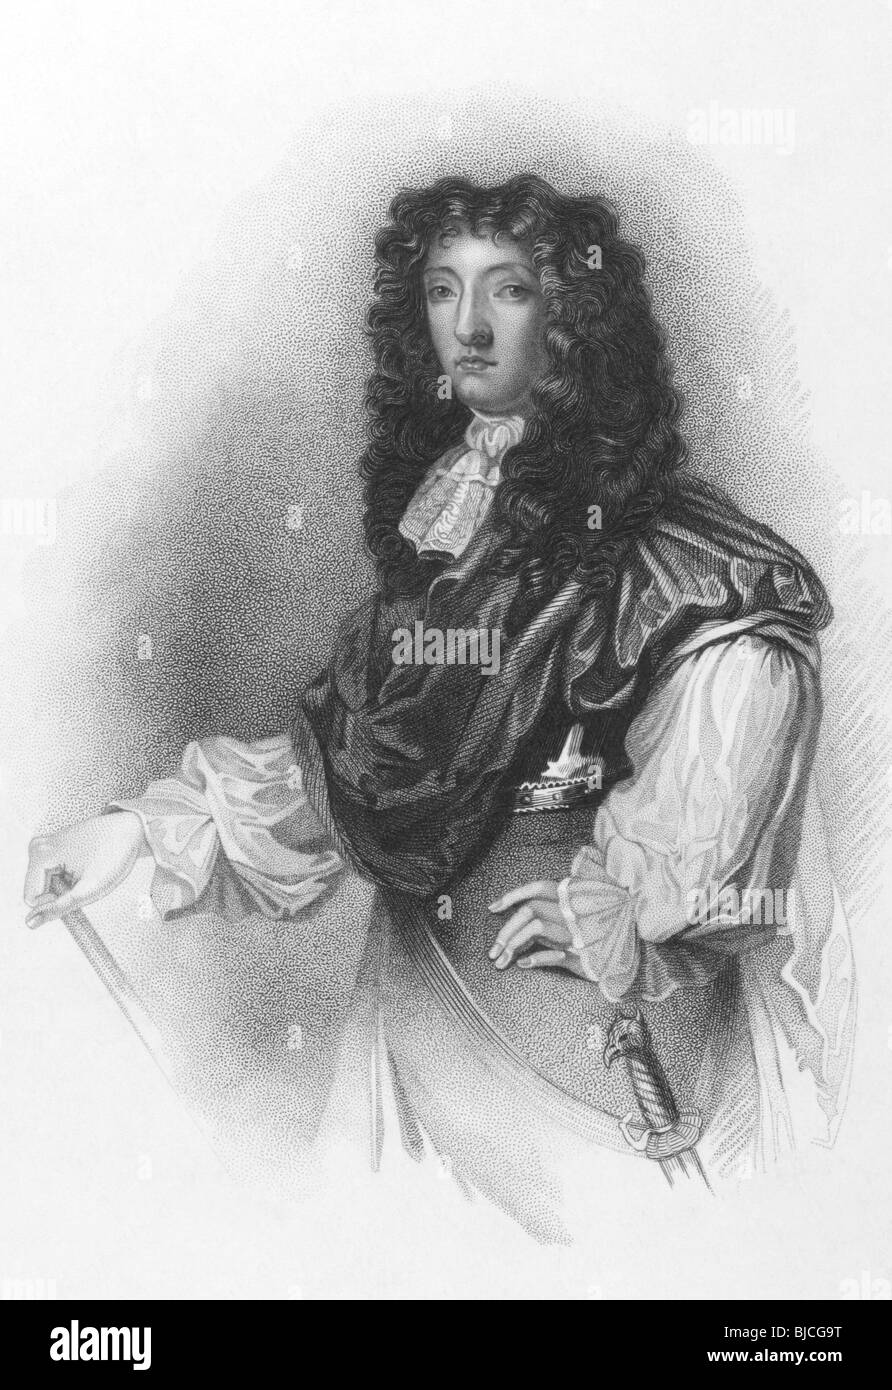 John Graham, 1st Viscount of Dundee (1648-1689) on engraving from the 1800s. - Stock Image